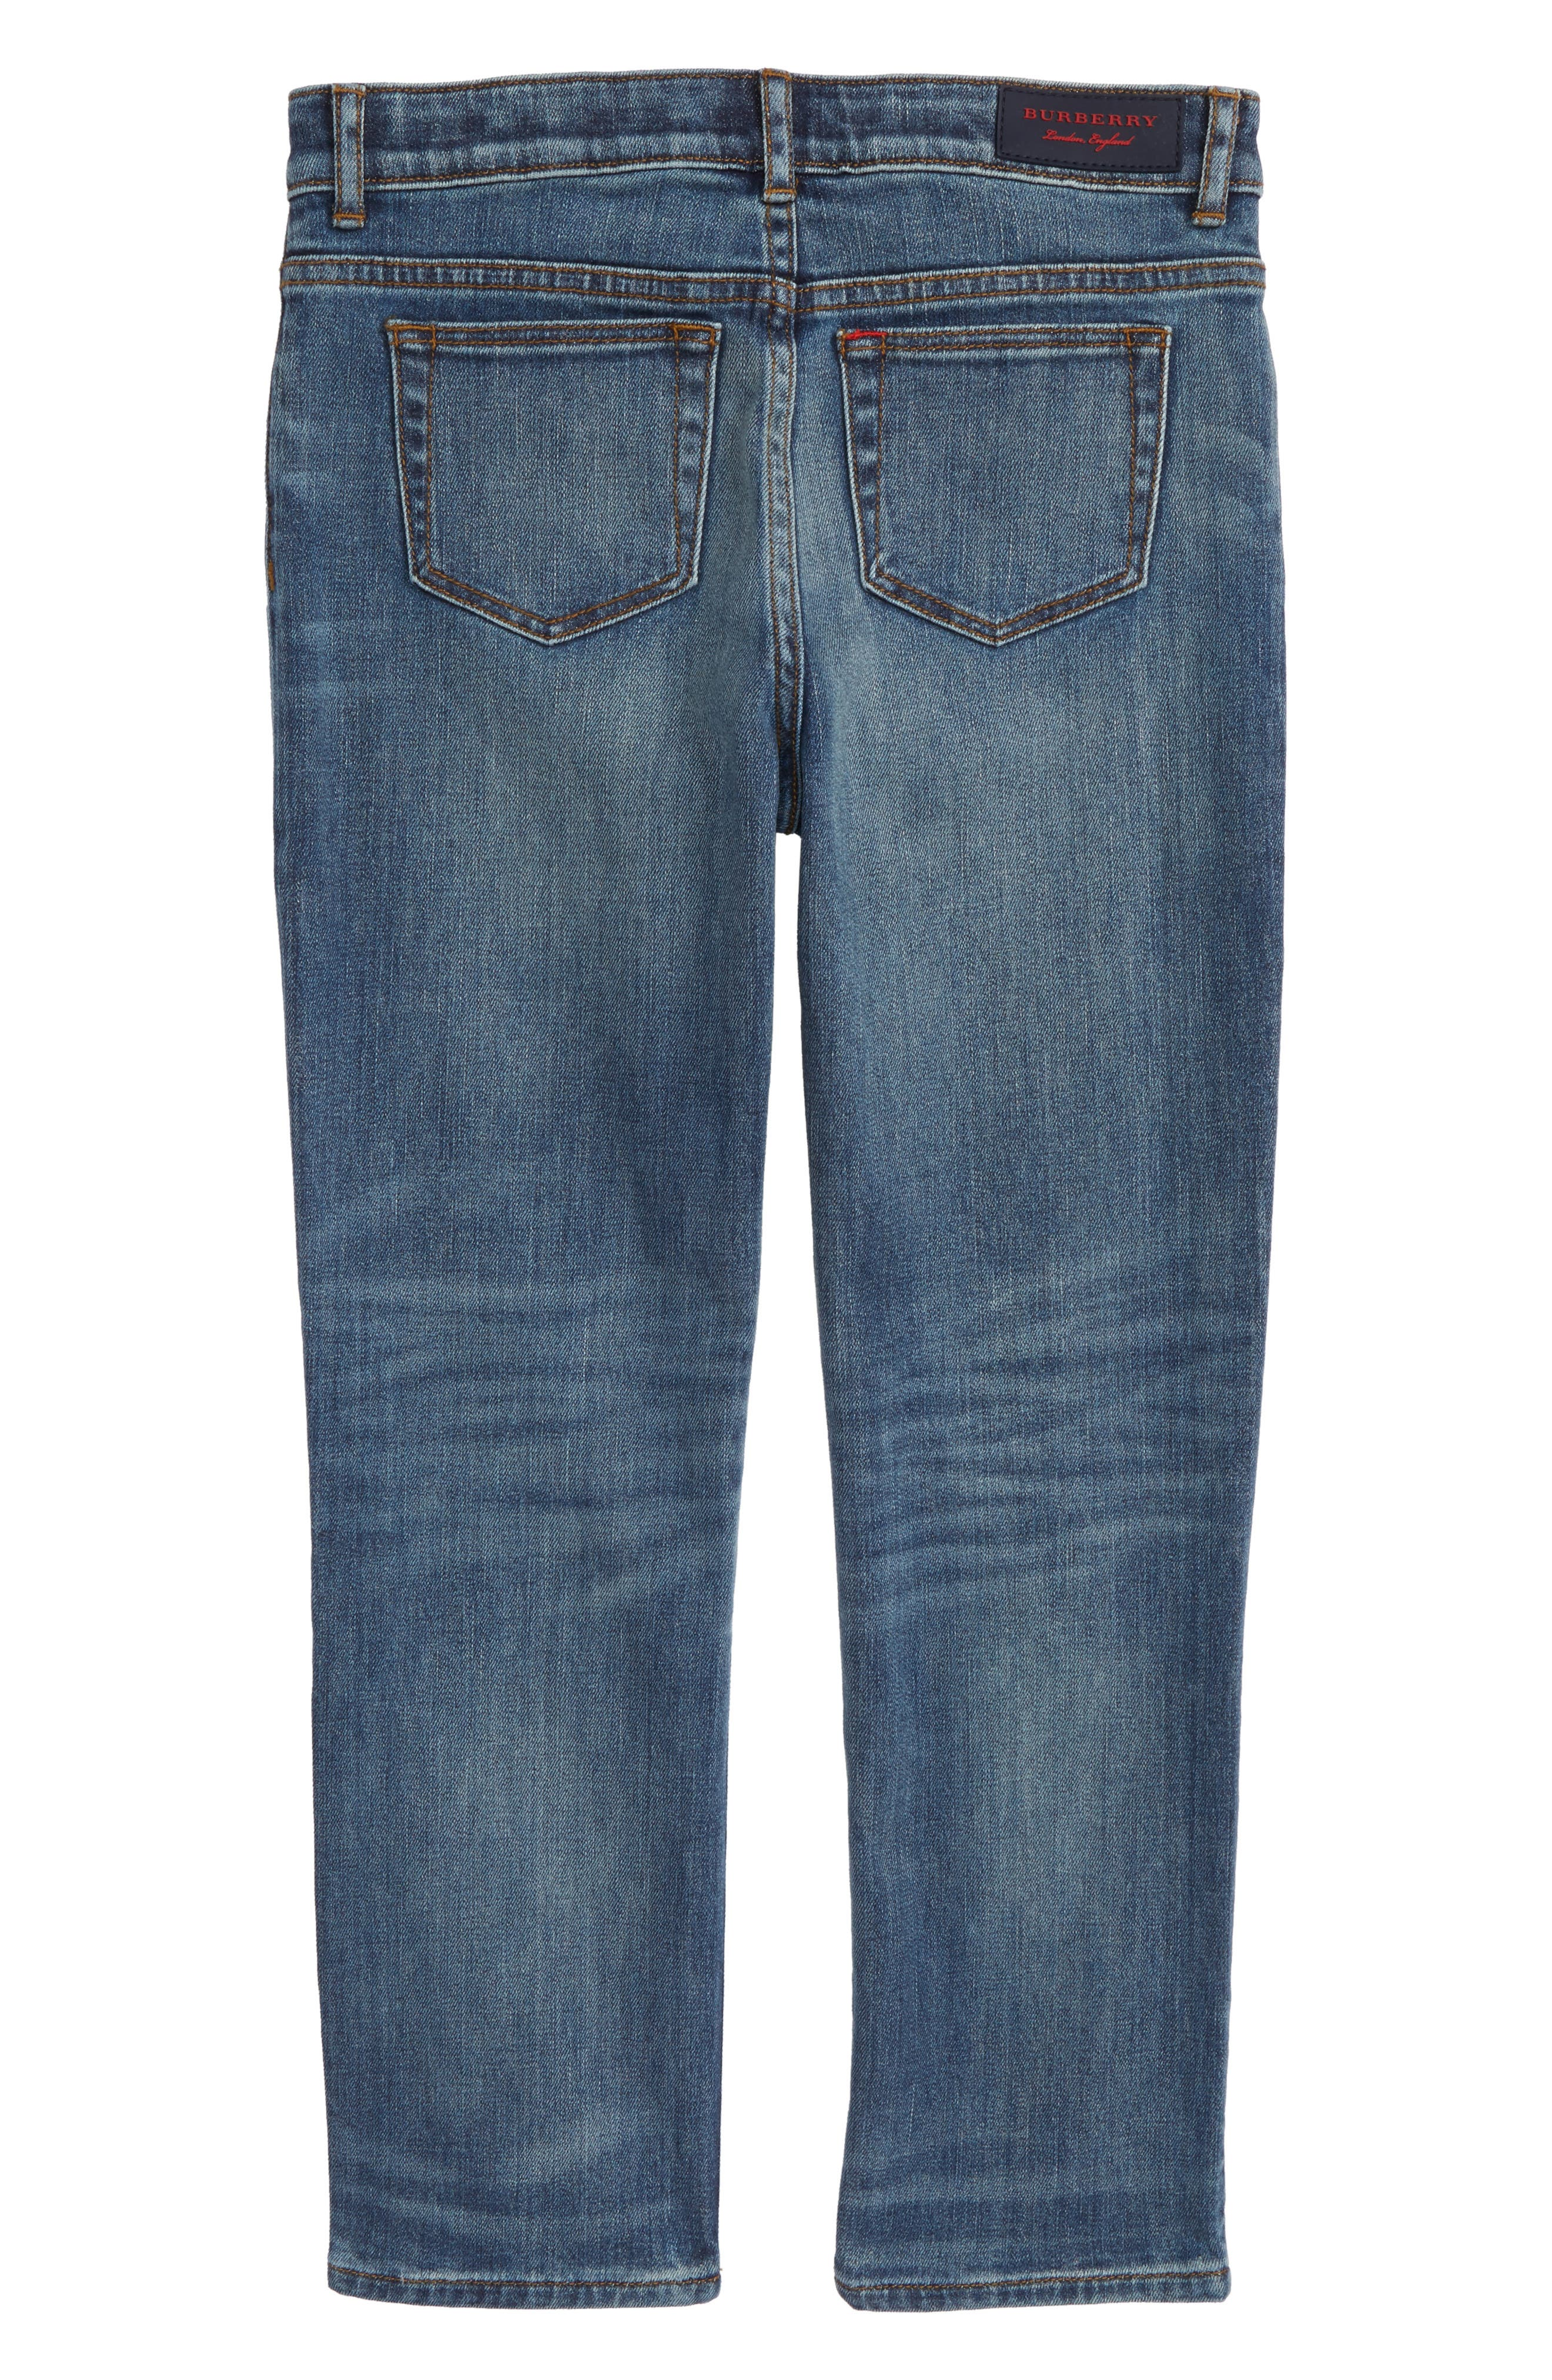 BURBERRY, Relaxed Fit Jeans, Alternate thumbnail 2, color, 412